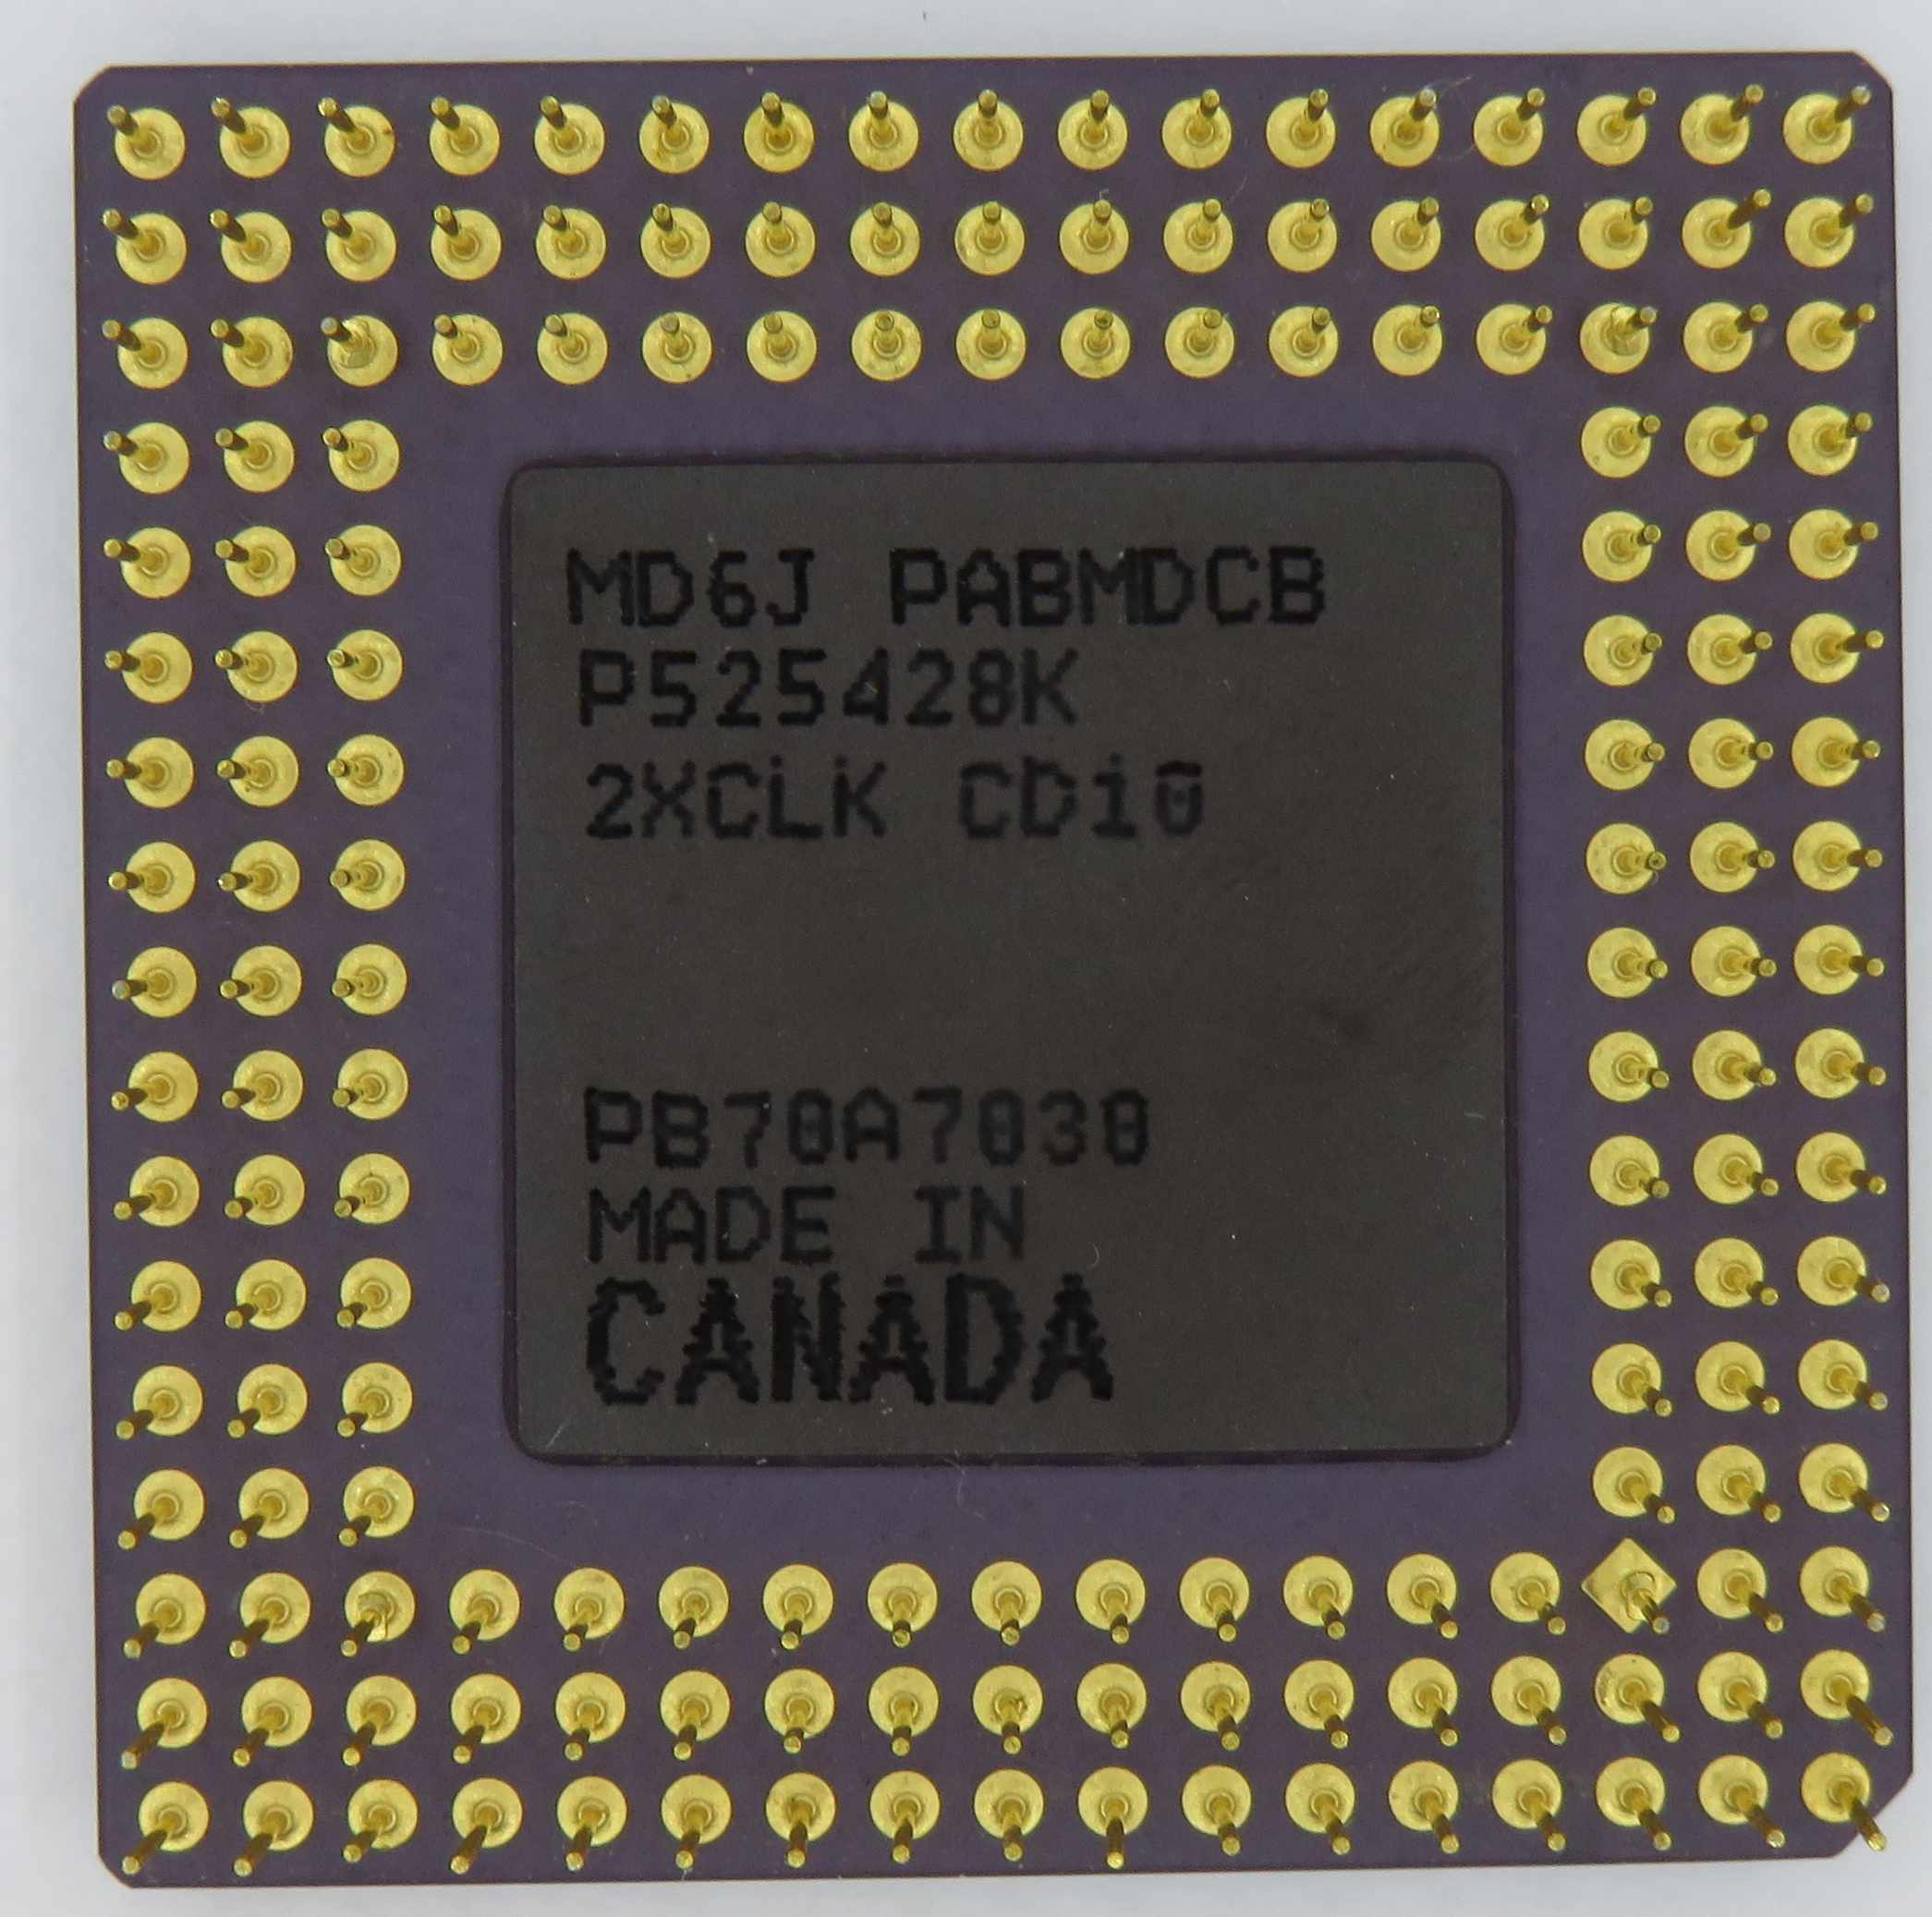 IT S ST486DX2-80GS PINs.jpg